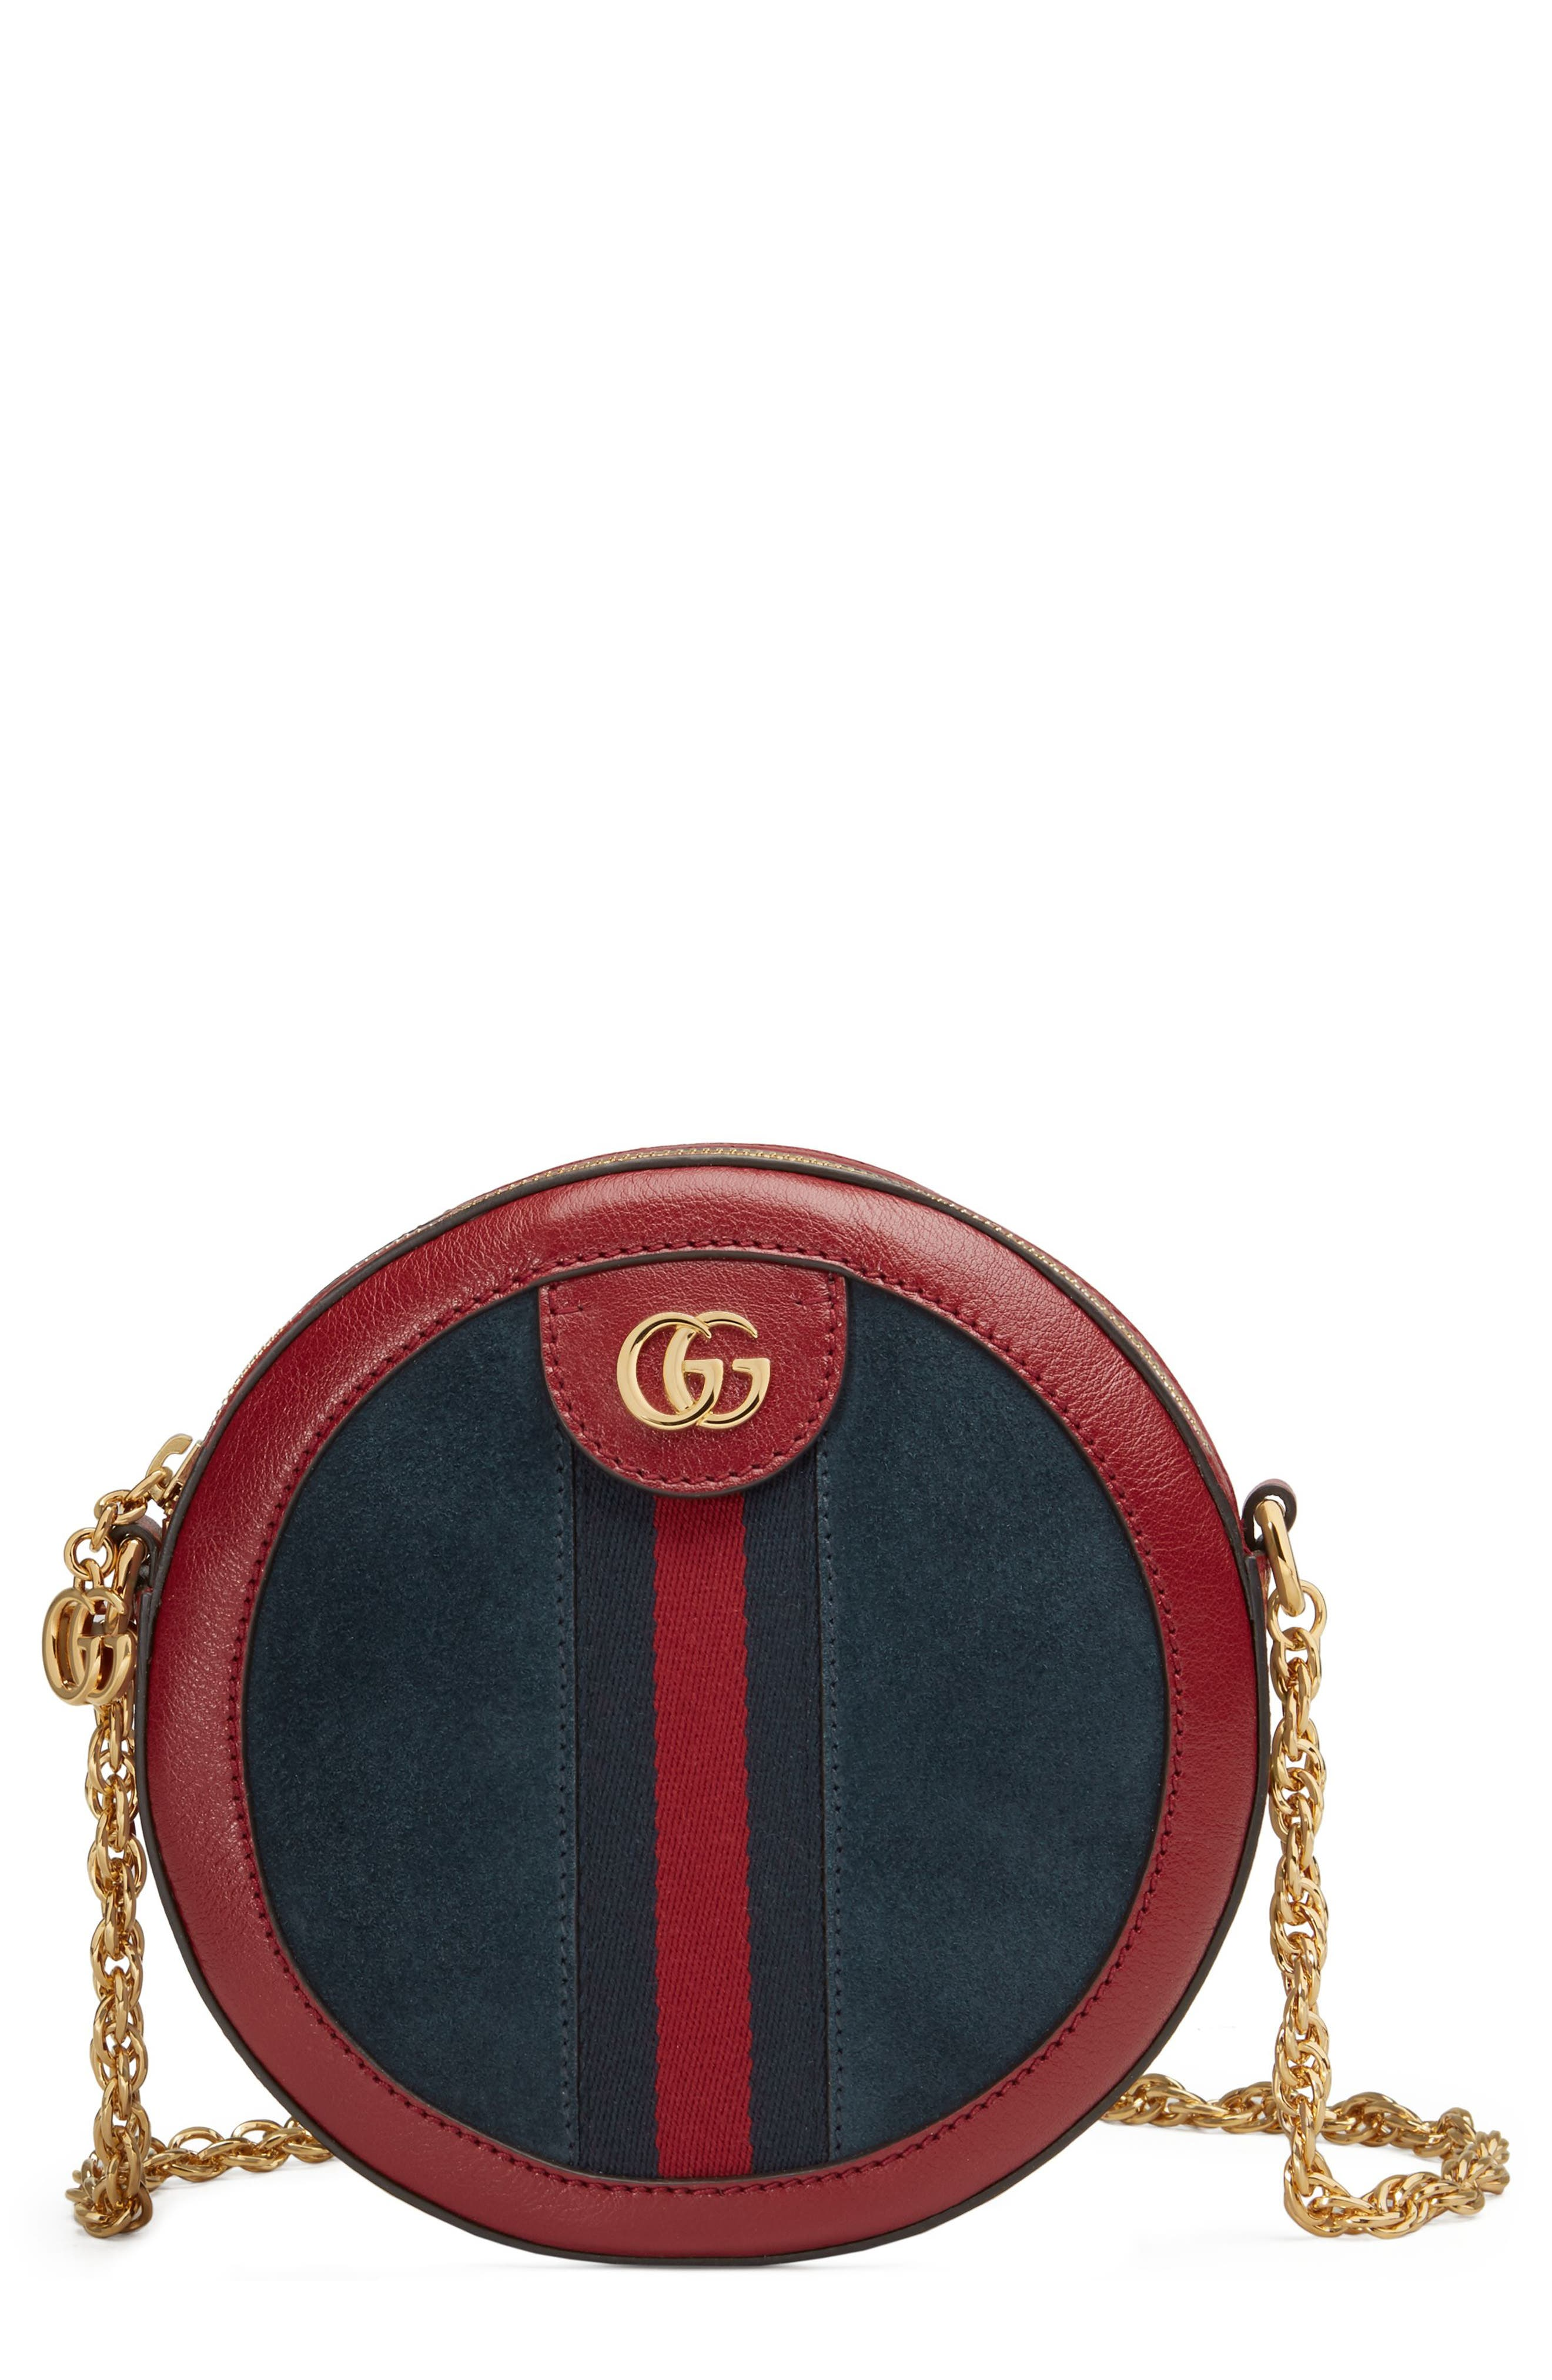 Ophidia Small Suede & Leather Circle Crossbody Bag,                             Main thumbnail 1, color,                             NEW BLU/ ROMANTIC CERISE